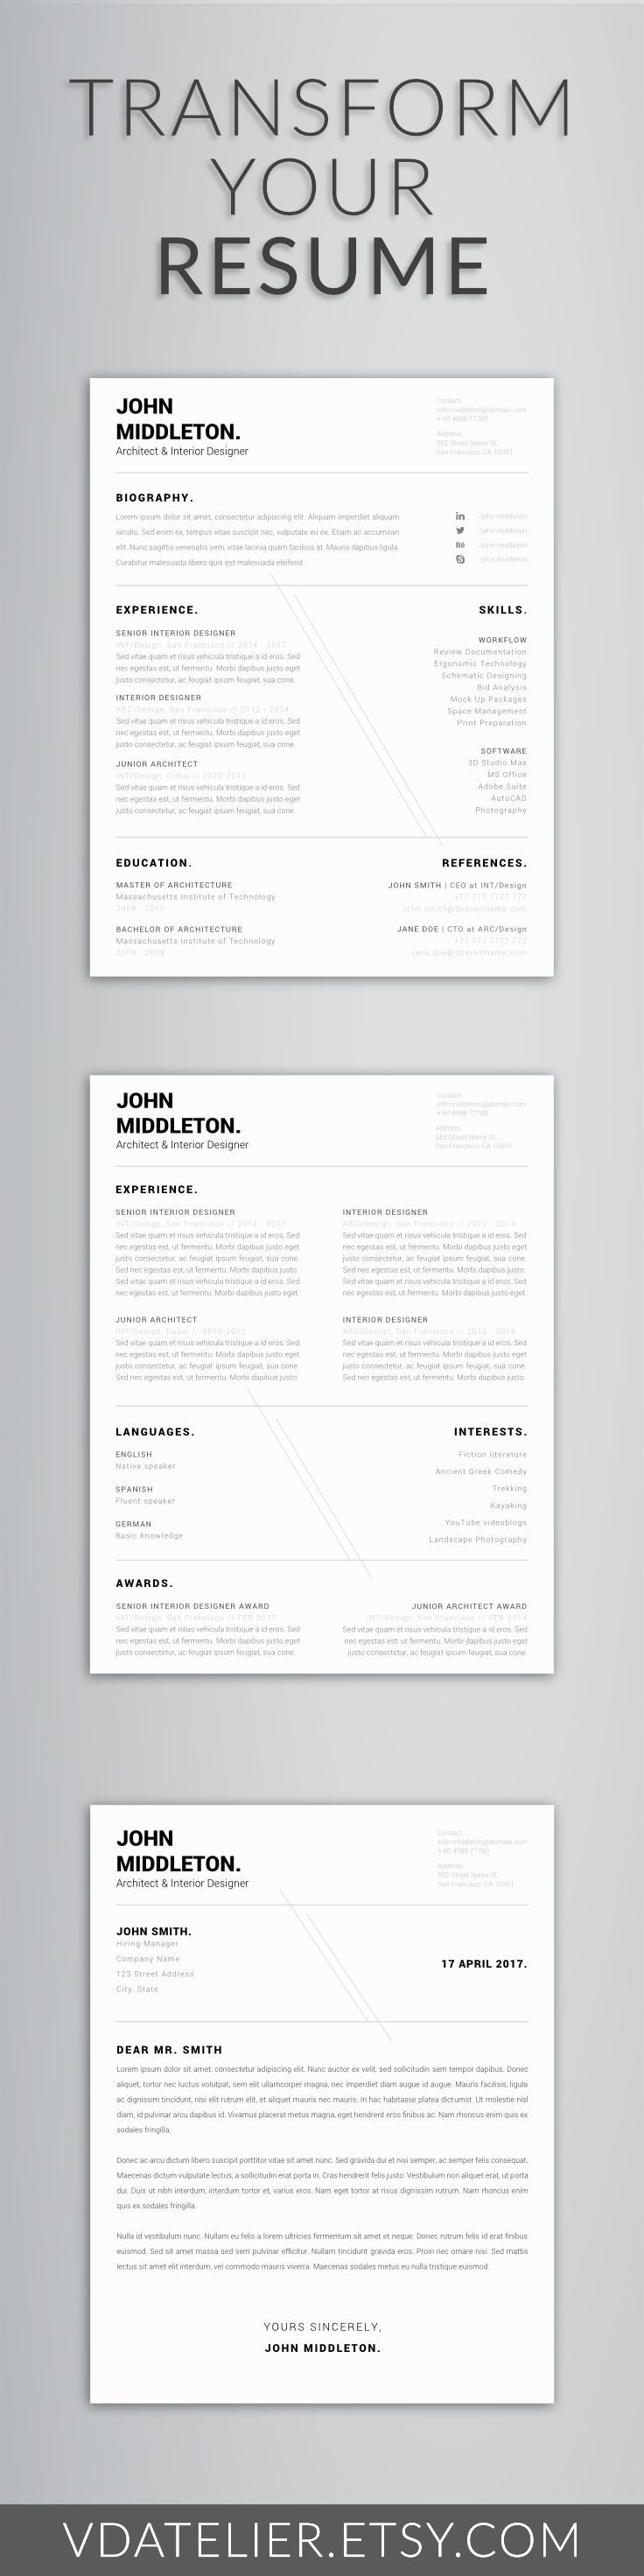 Interior Design Resume Template - Interior Design Resumes Best Resume Samples Doc – Template Free